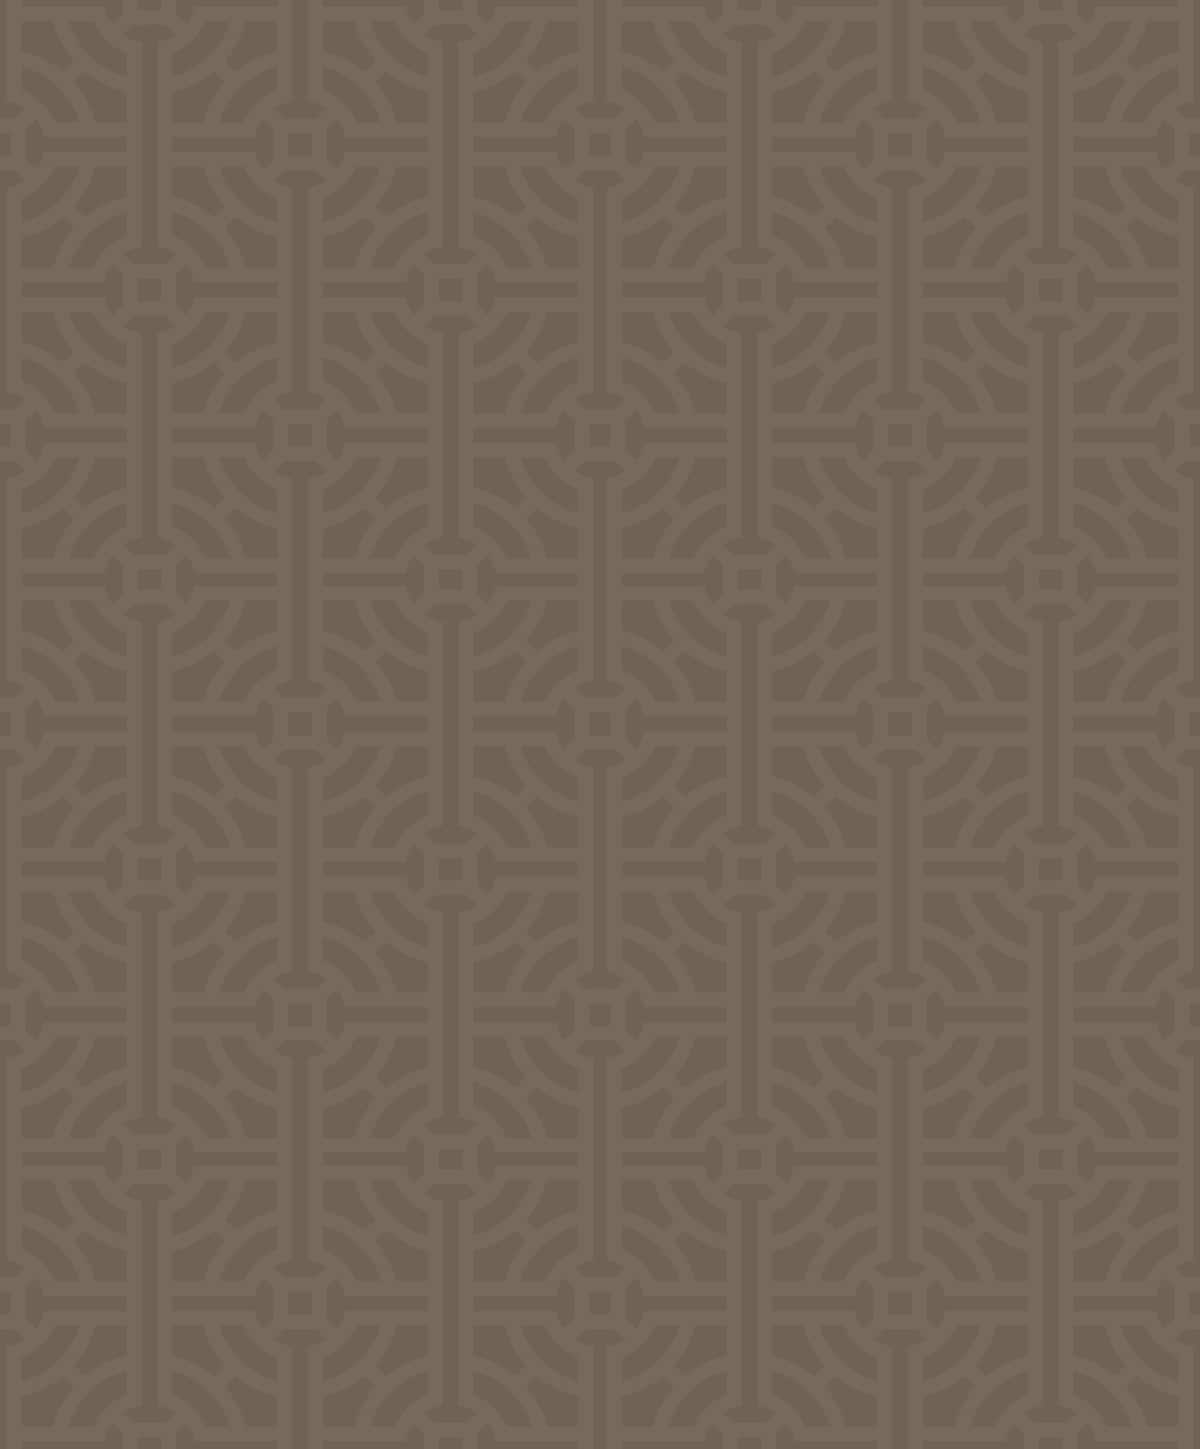 savile-row-wallpaper-fretwork-SR00506